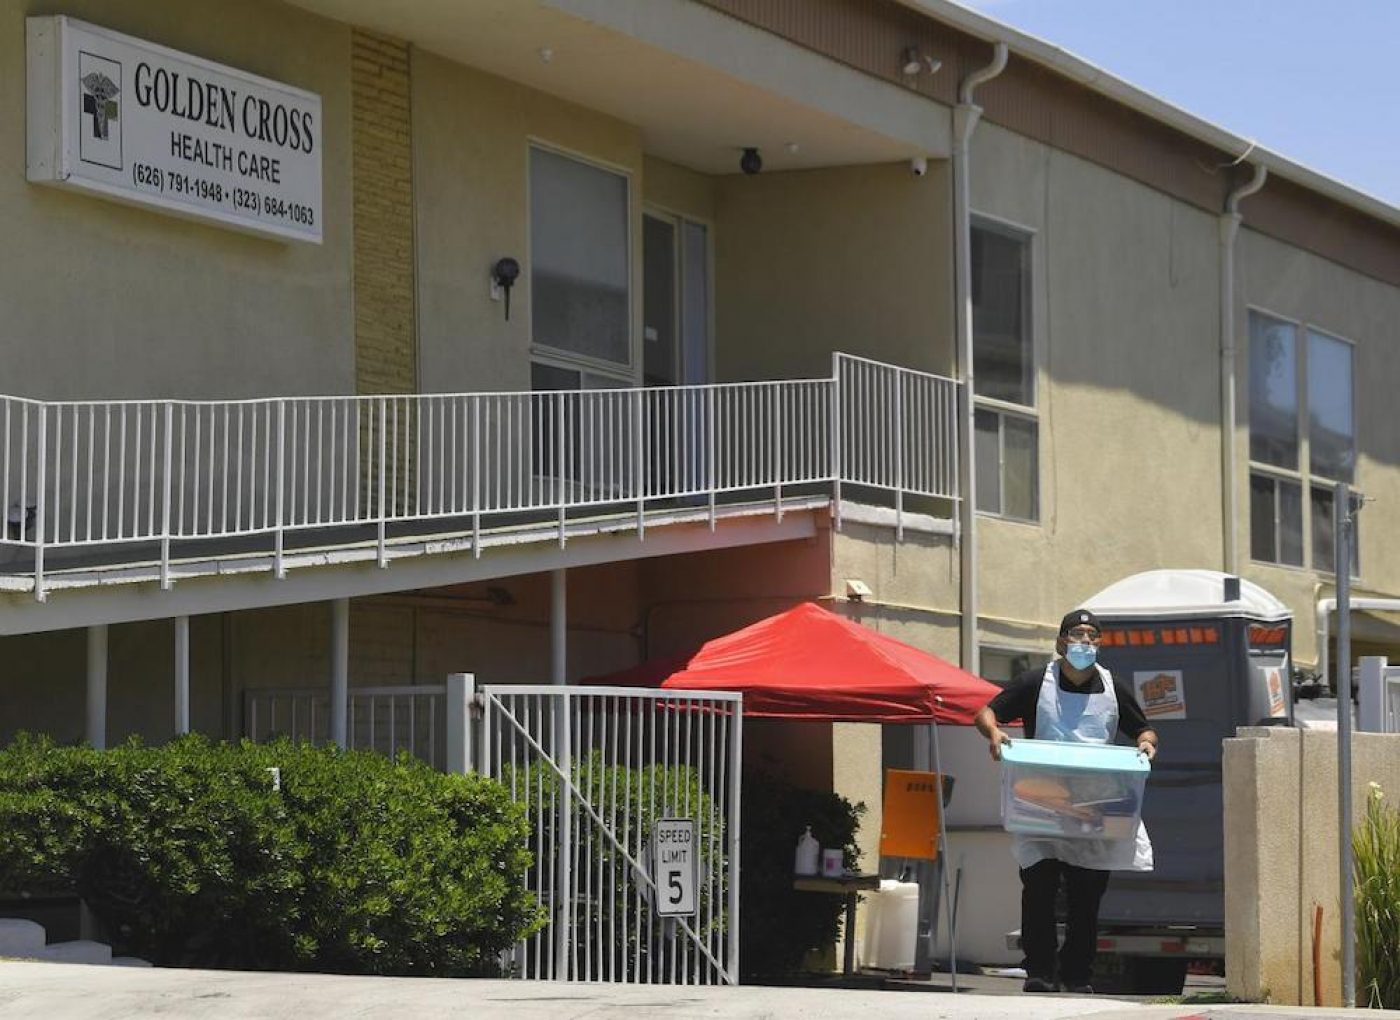 Golden Cross Health Care in Pasadena, CA closes due to COVID-19 cases